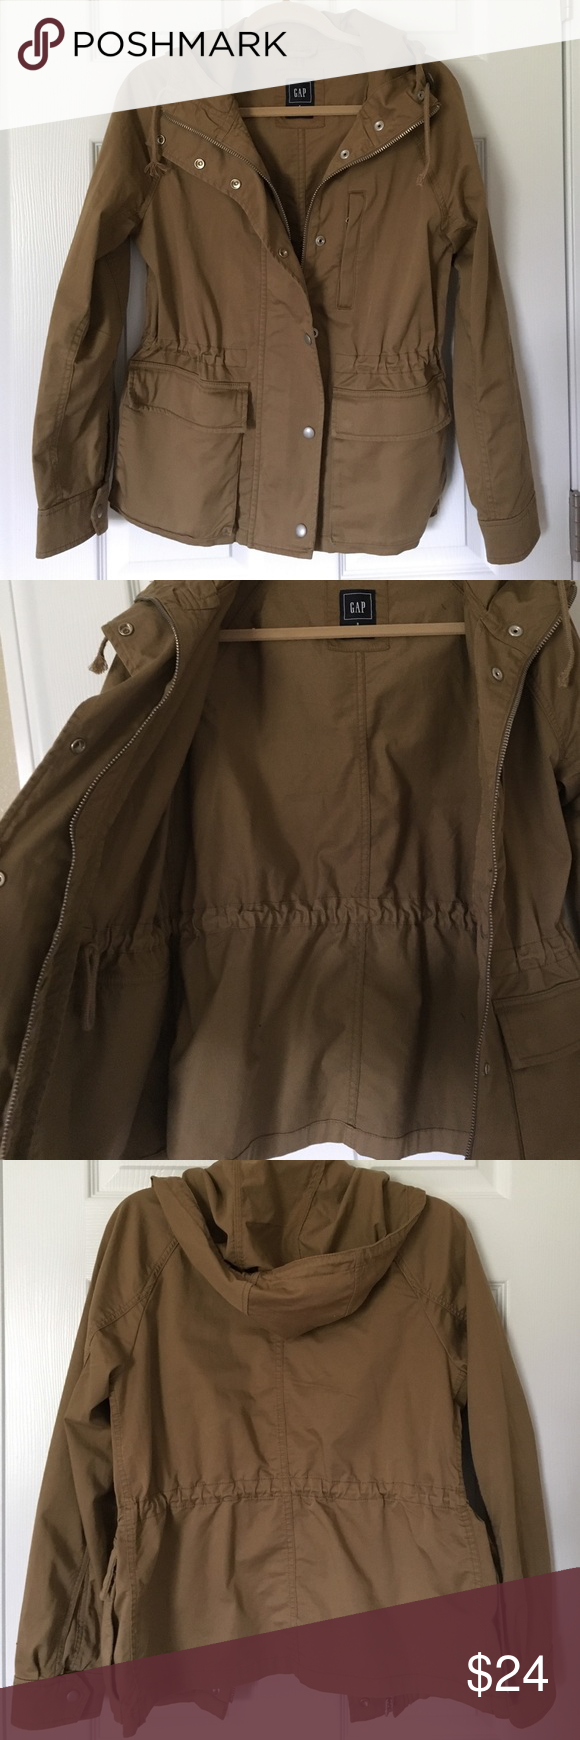 Gap utility jacket Gap utility jacket. Perfect for spring. Hood, adjustable waist, outer pockets with snap closure. Zipper and snaps in the front. Chest pocket with zipper. Size small. Camel/tan color. Small mark on front that will probably come out in wash. GAP Jackets & Coats